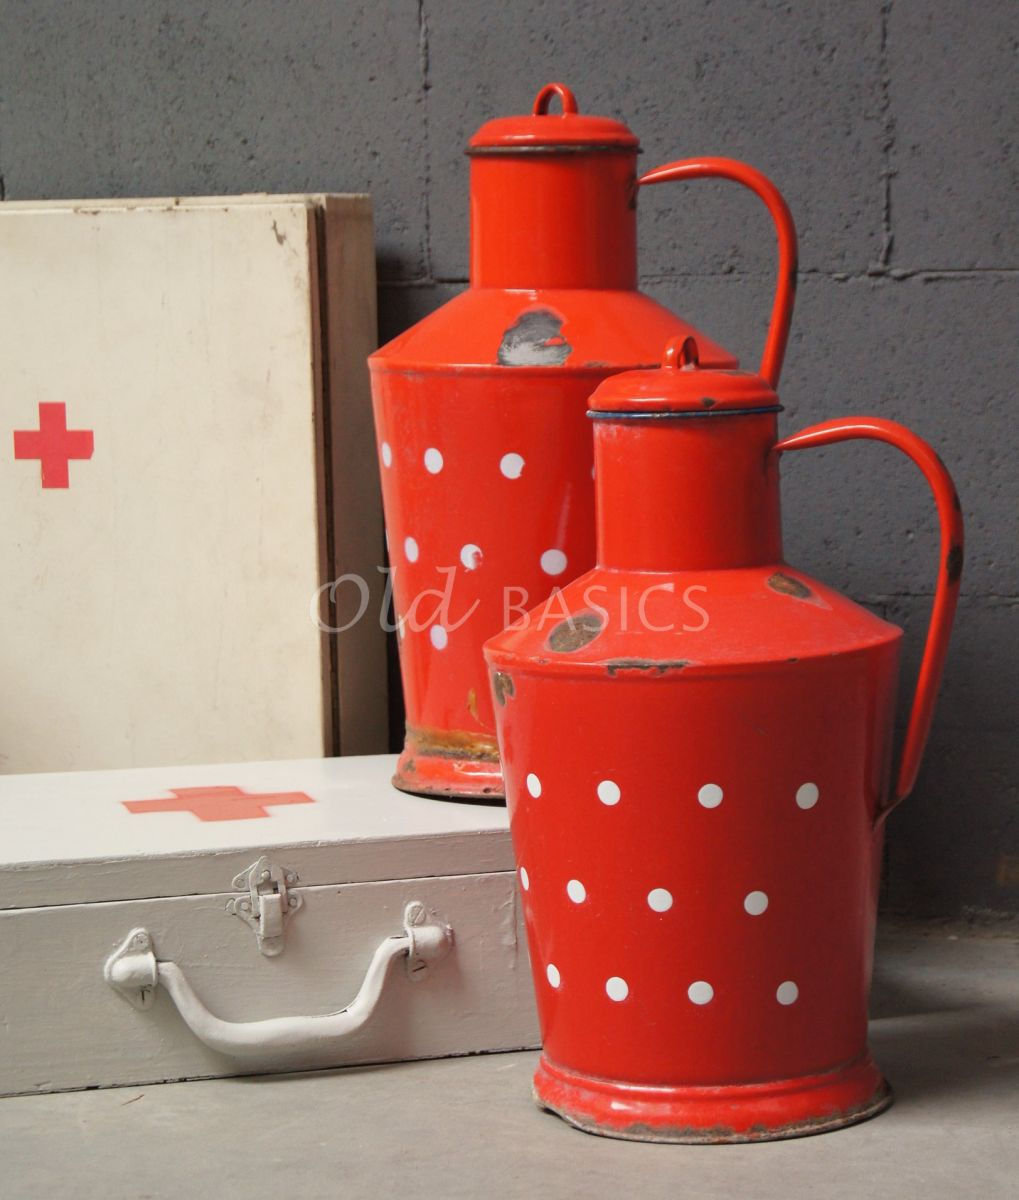 Emaille kan, rood, wit, materiaal staal